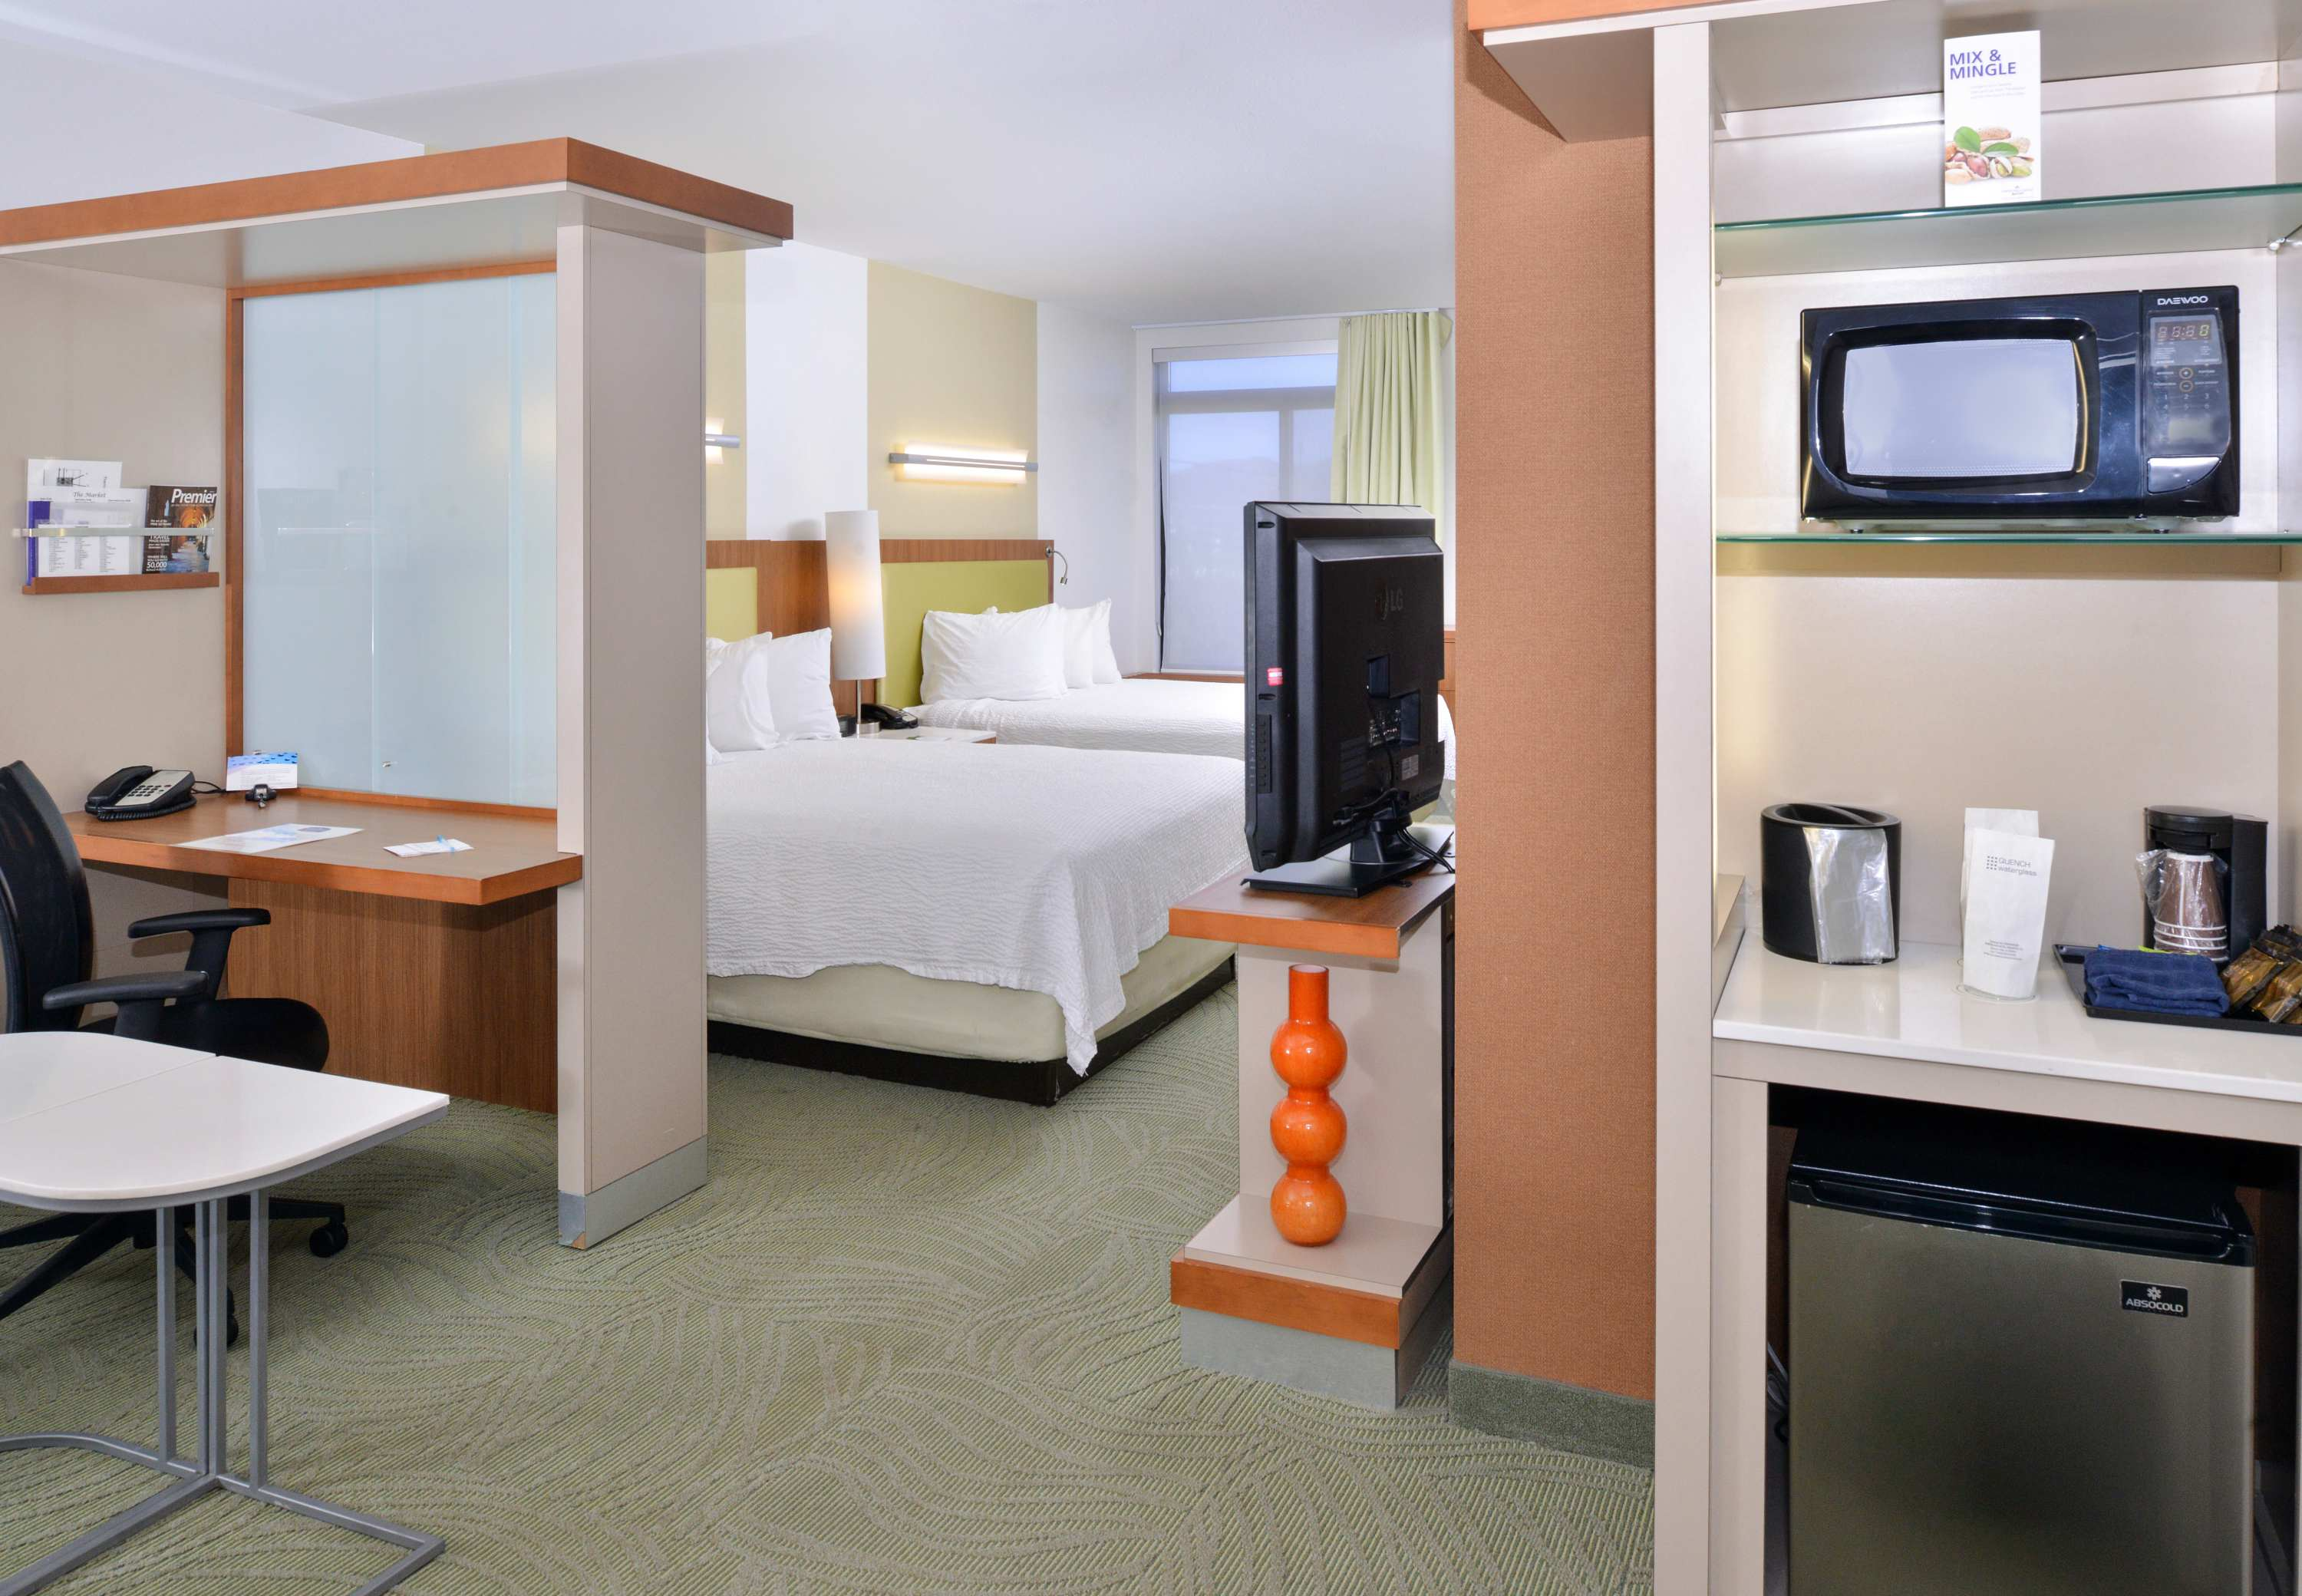 SpringHill Suites by Marriott Kingman Route 66 image 3